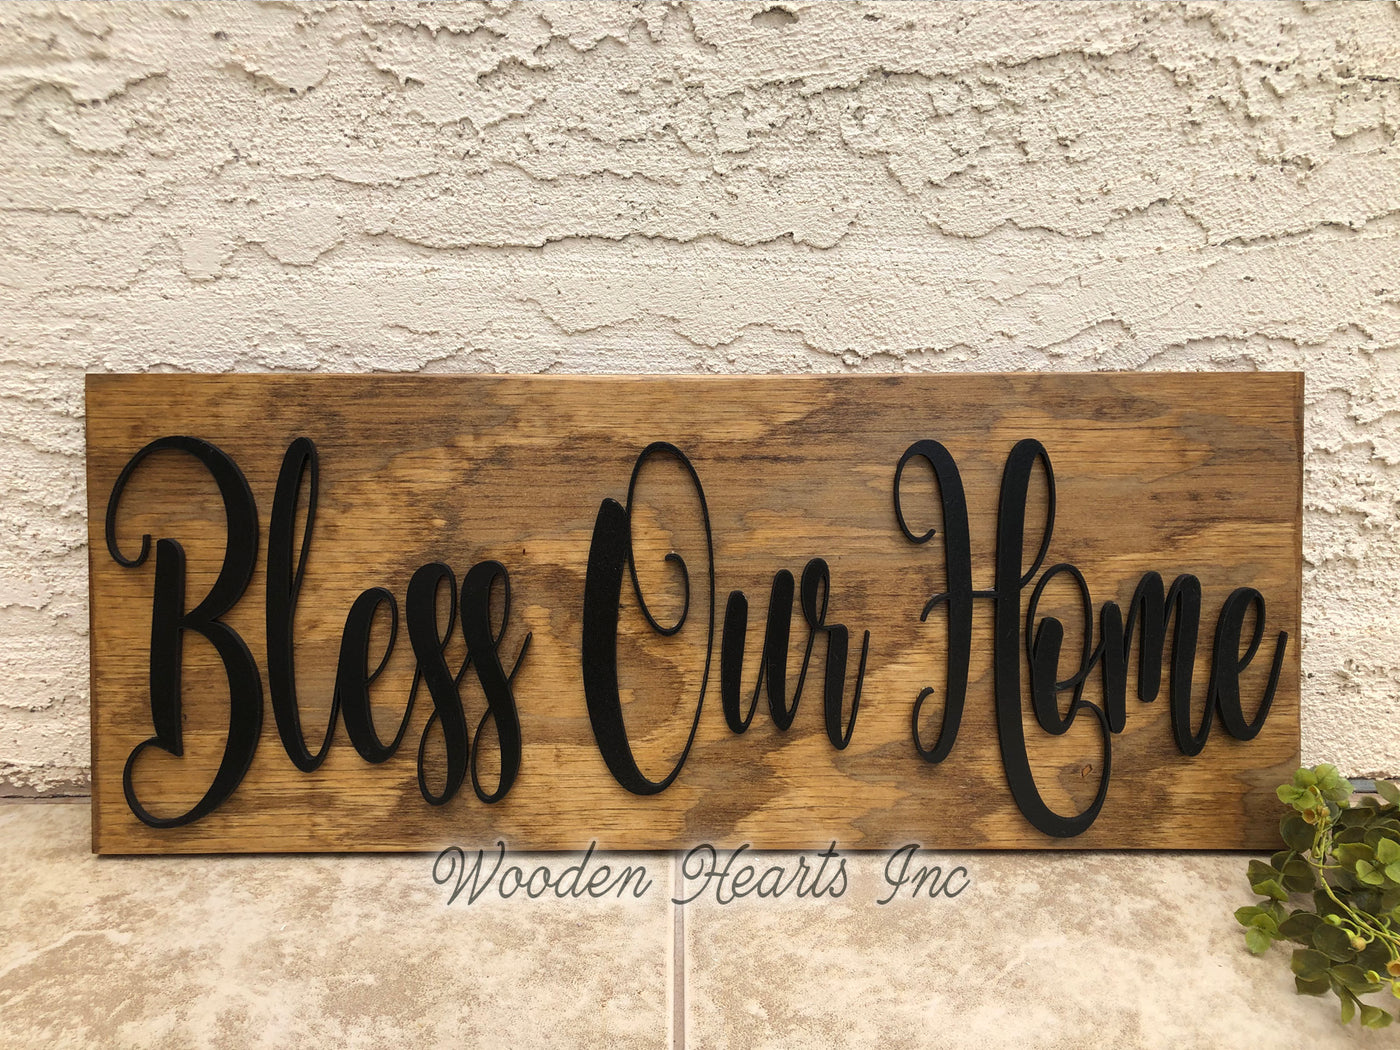 Bless Our Home 3d Wood Horizontal Wall Home Sign 9x24 Inspirational Wooden Hearts Inc